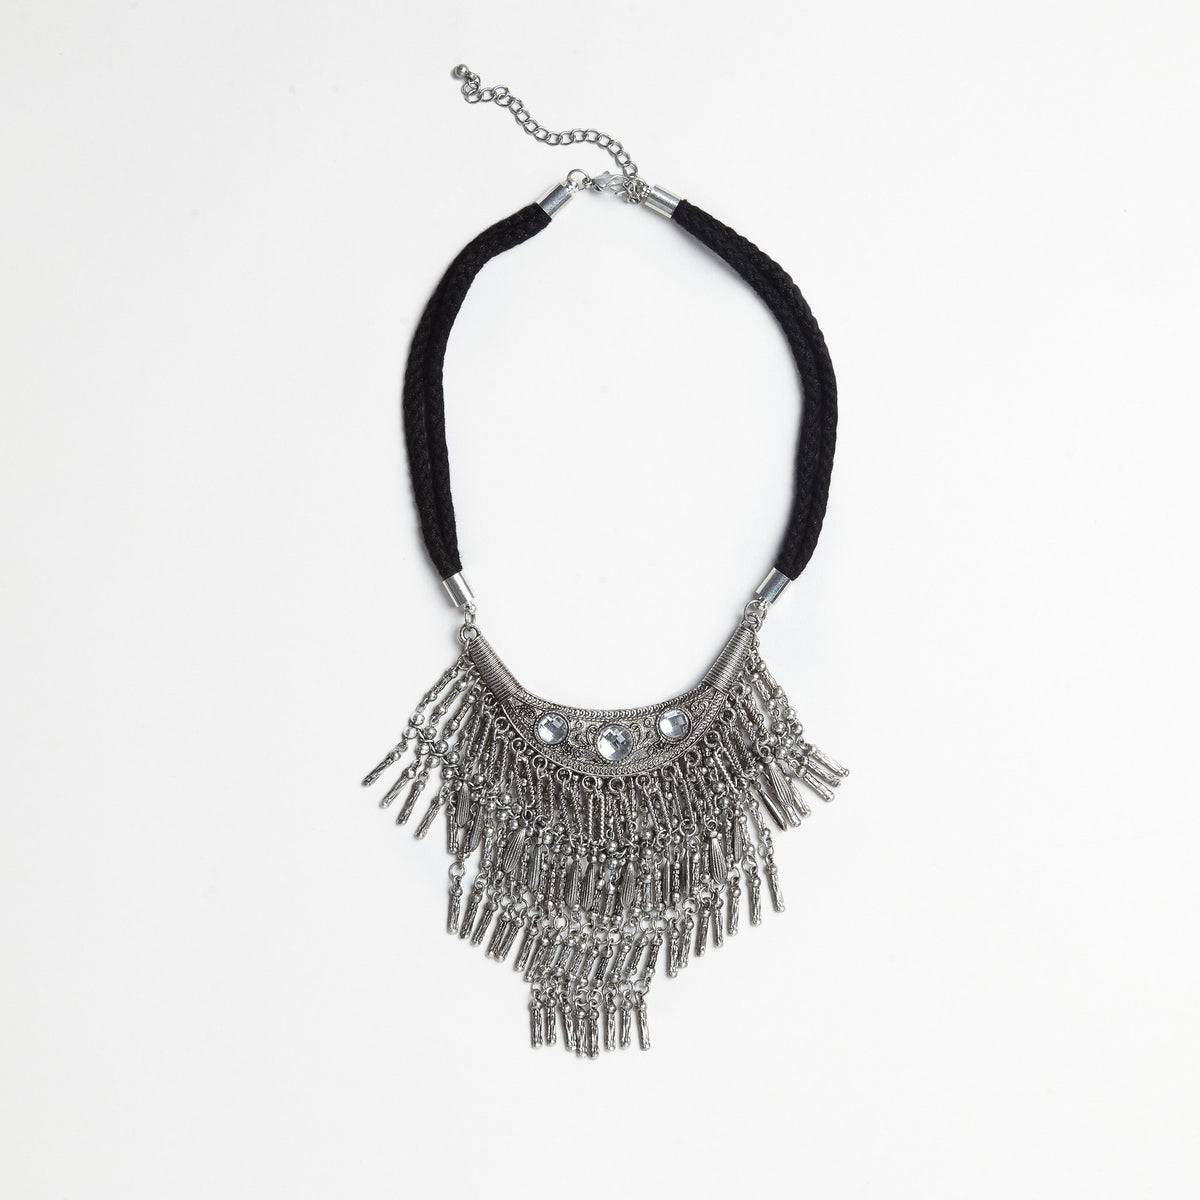 Metal/Rope Bib Necklace